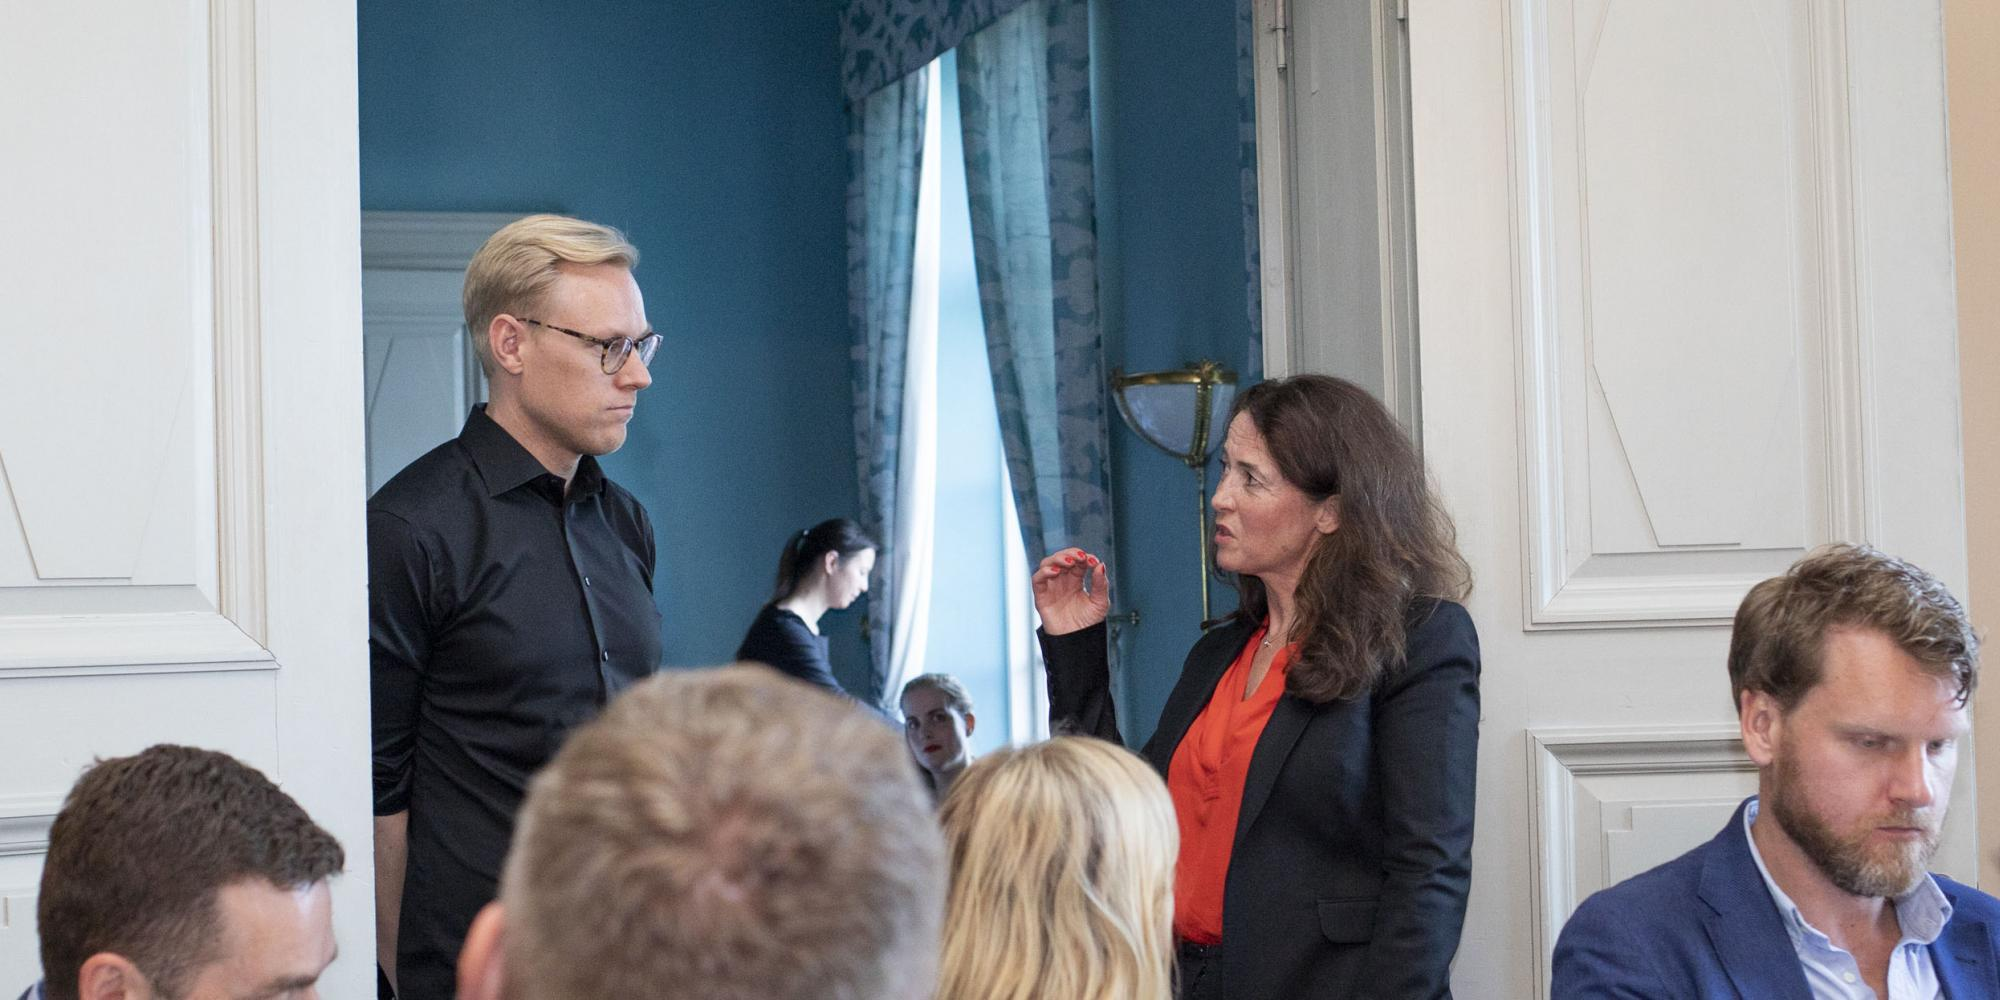 Erik Engellau-Nilsson, CEO of Norrsken Foundation was interviewed by Marie Wall, Deputy Director Startups at Ministry of Enterprise.